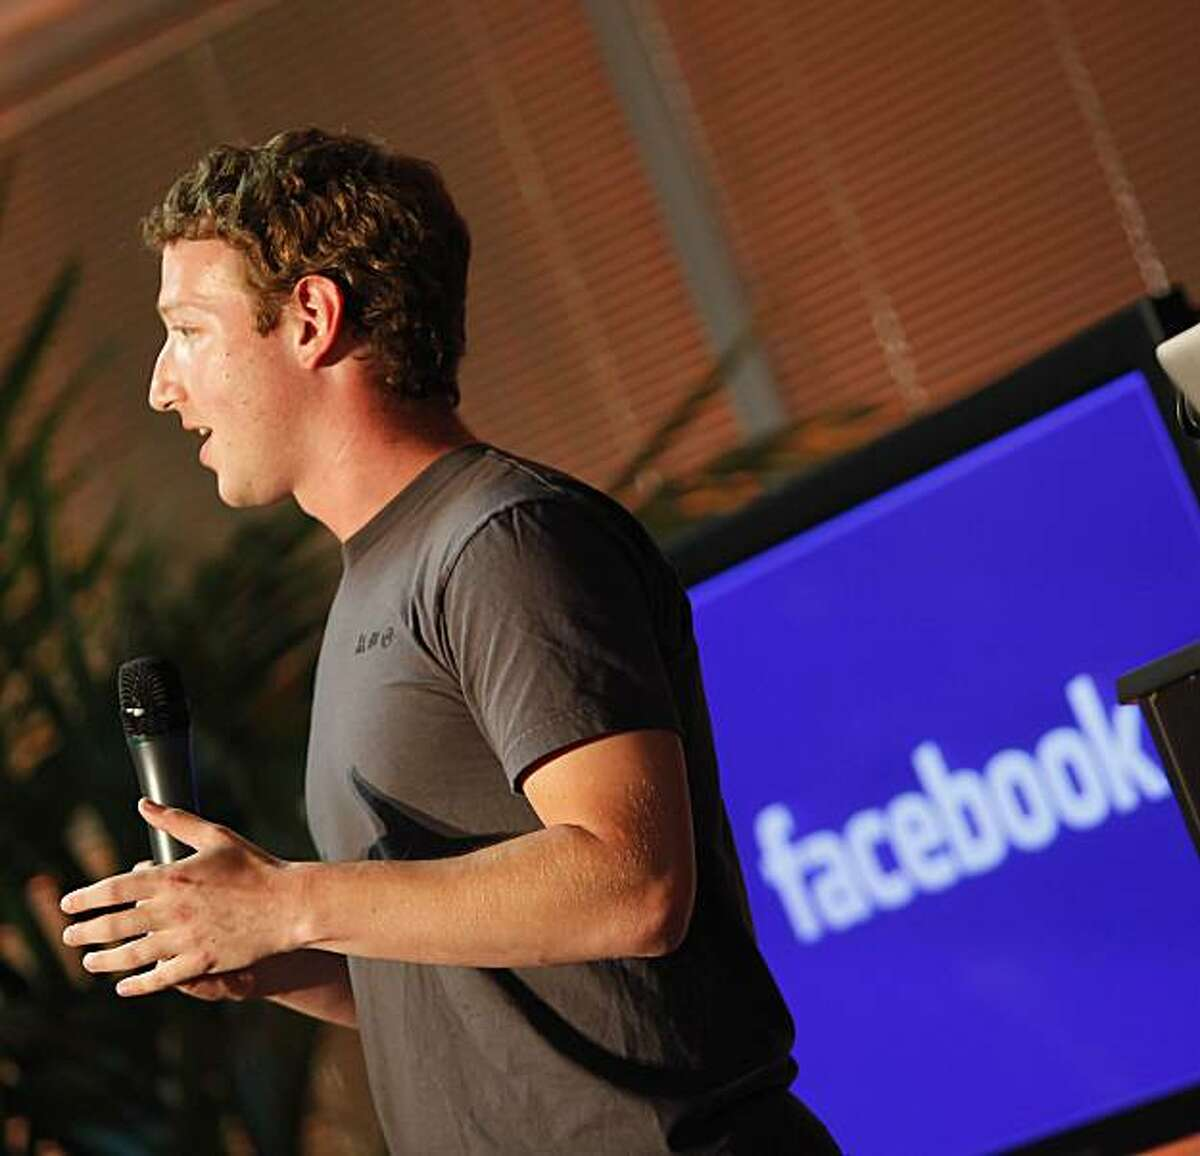 Facebook founder and CEO Mark Zuckerberg speaks during a press conference announciing a new feature of Facebook named